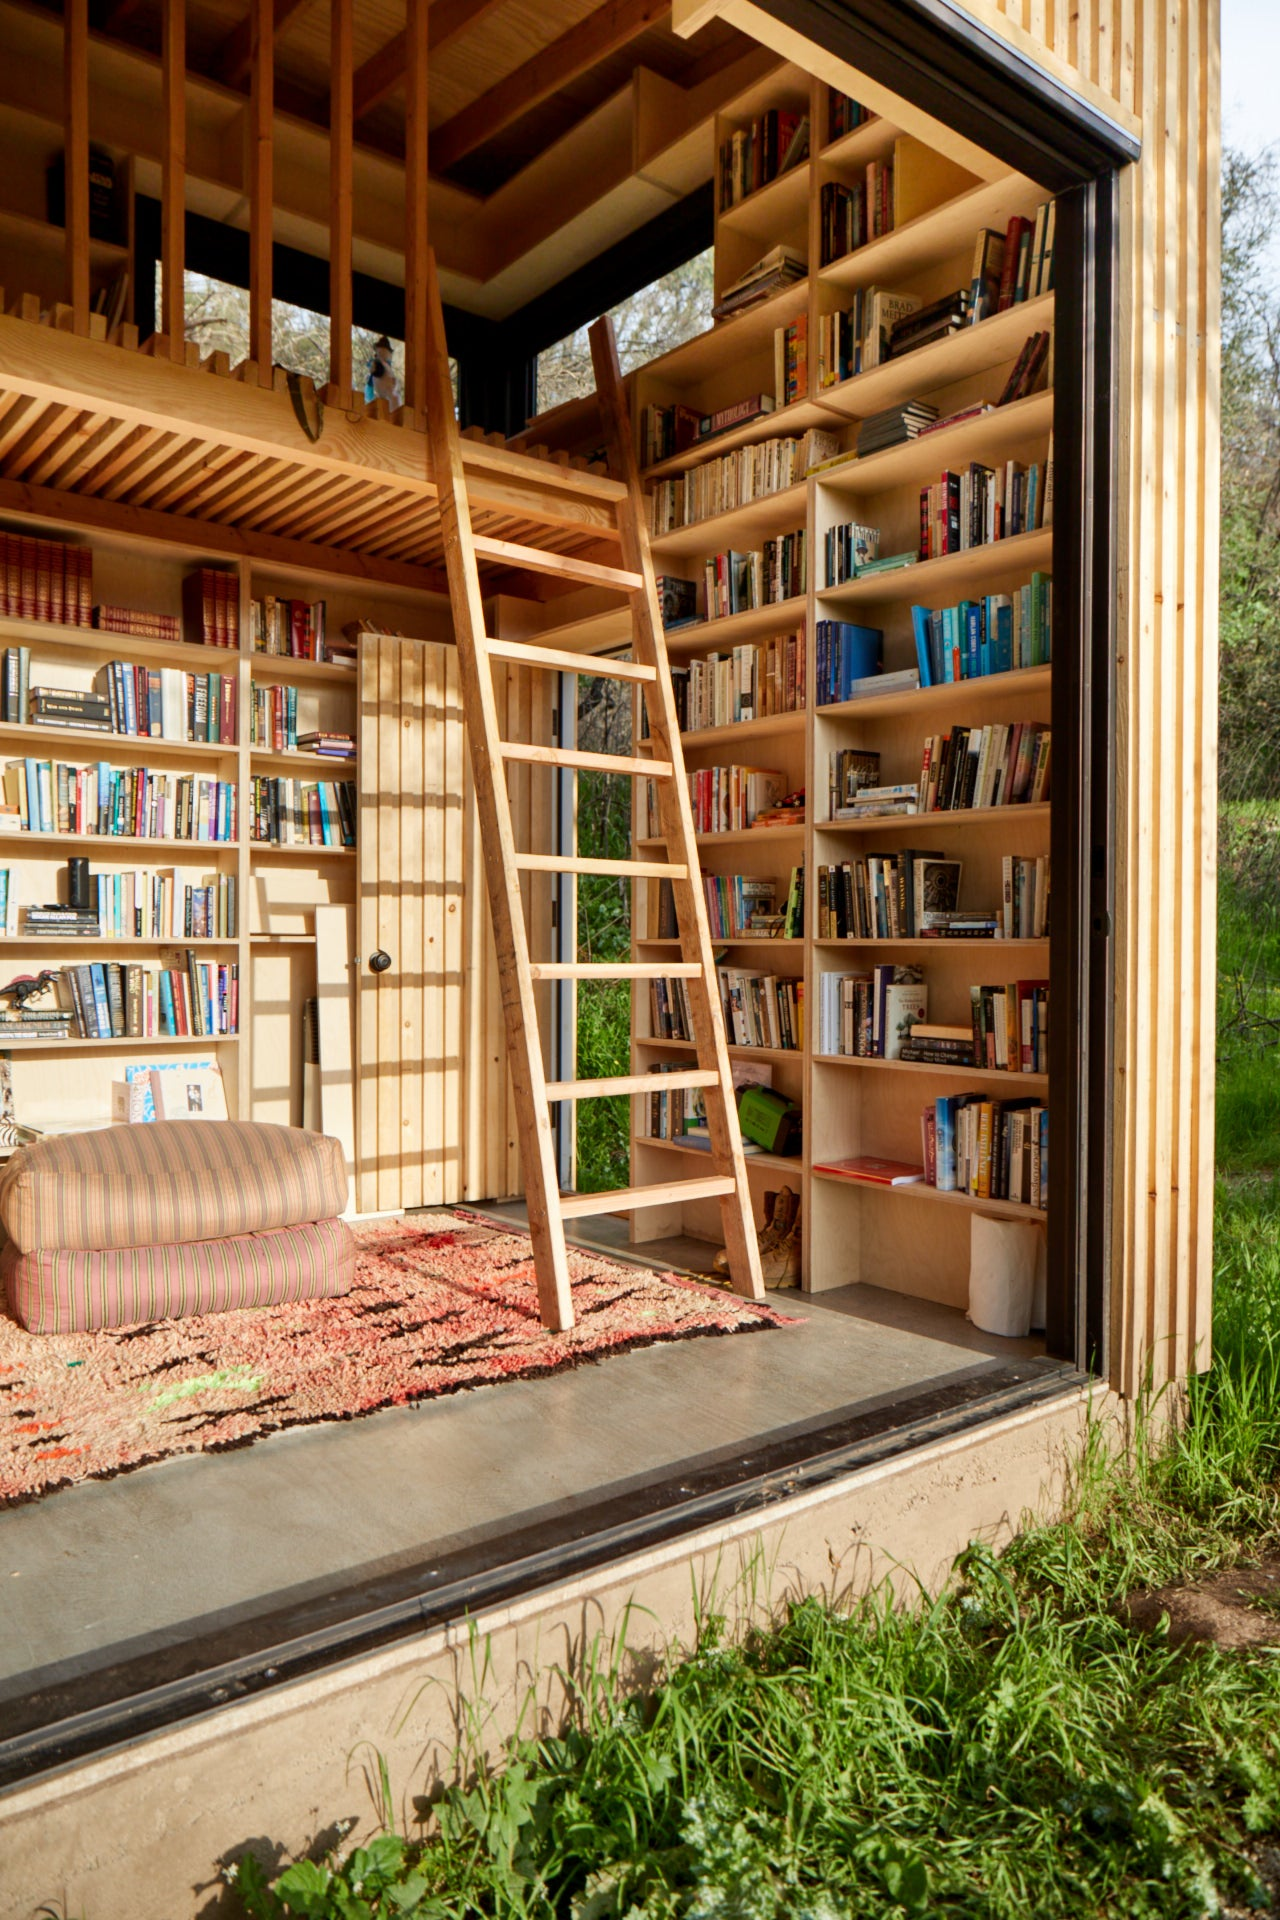 Bookshelf-lined interior of shed